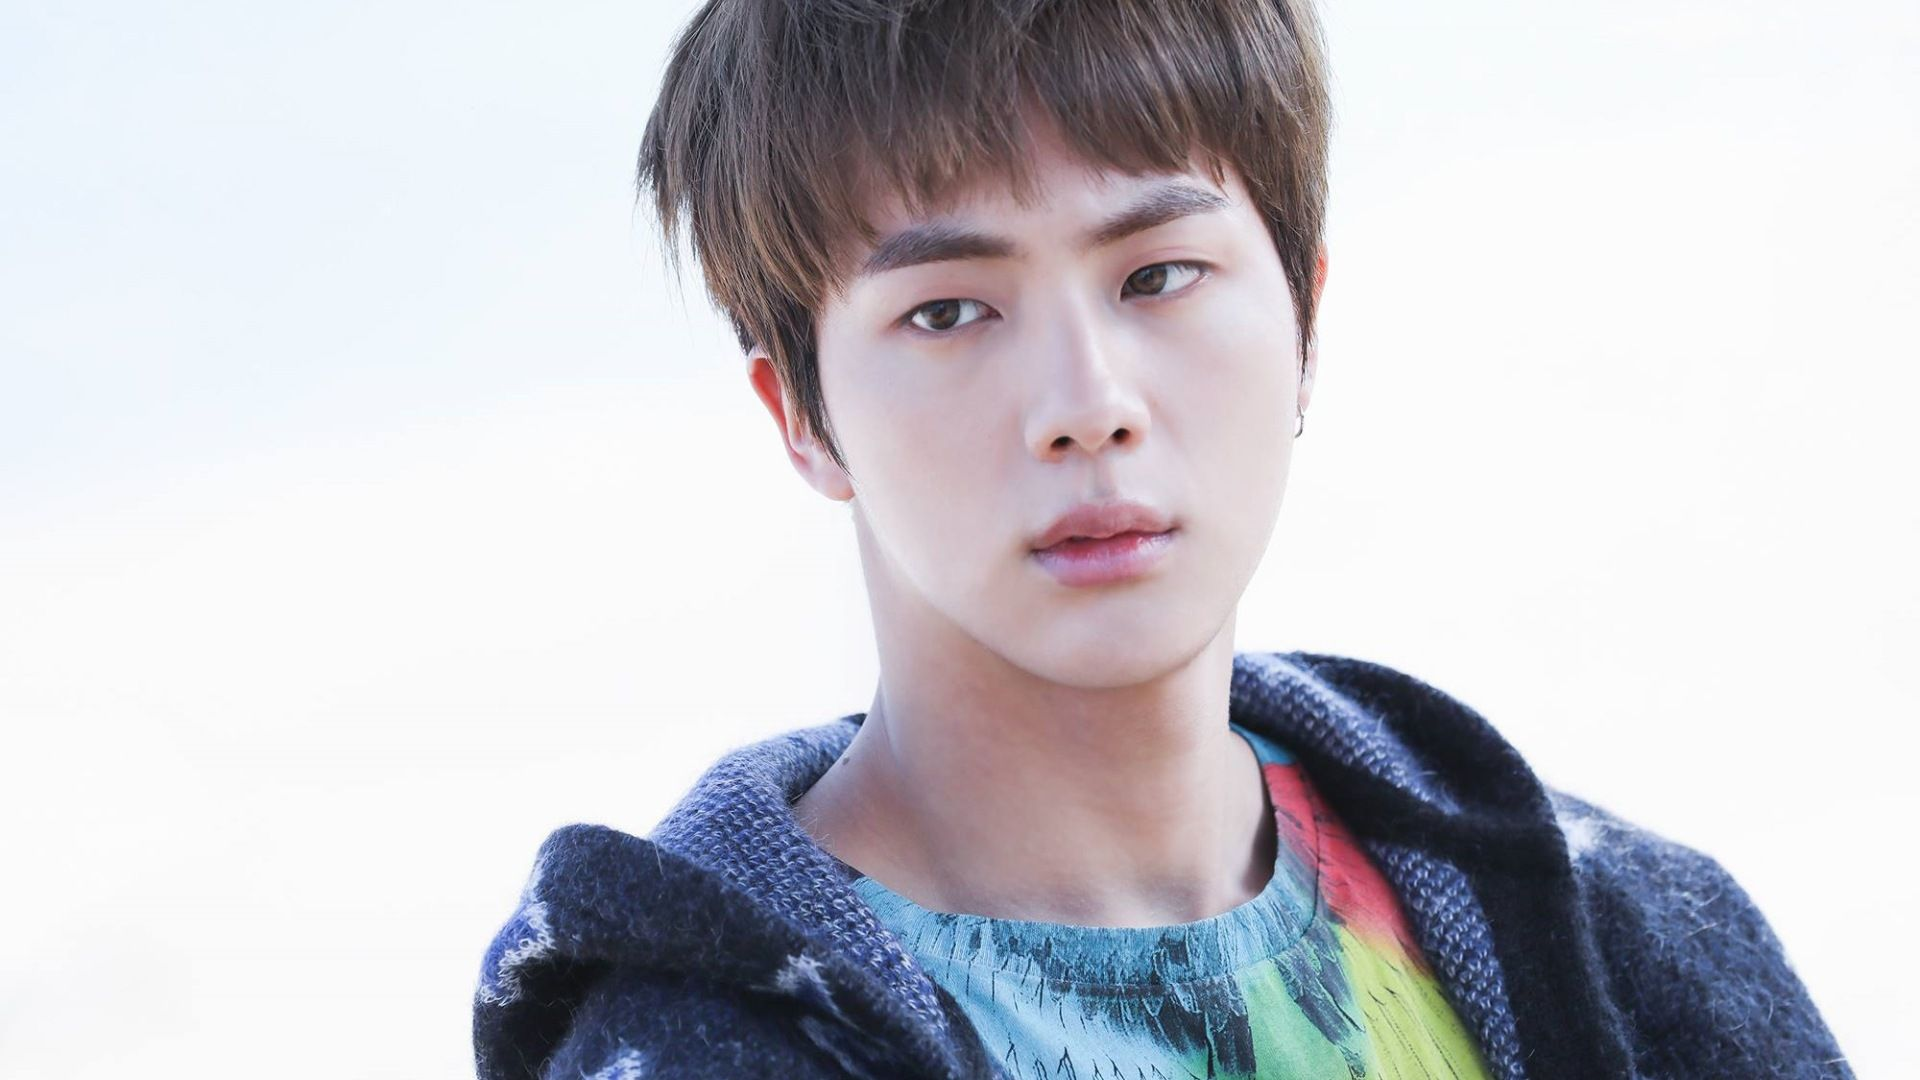 Bts Jin Wallpapers Top Free Bts Jin Backgrounds Wallpaperaccess